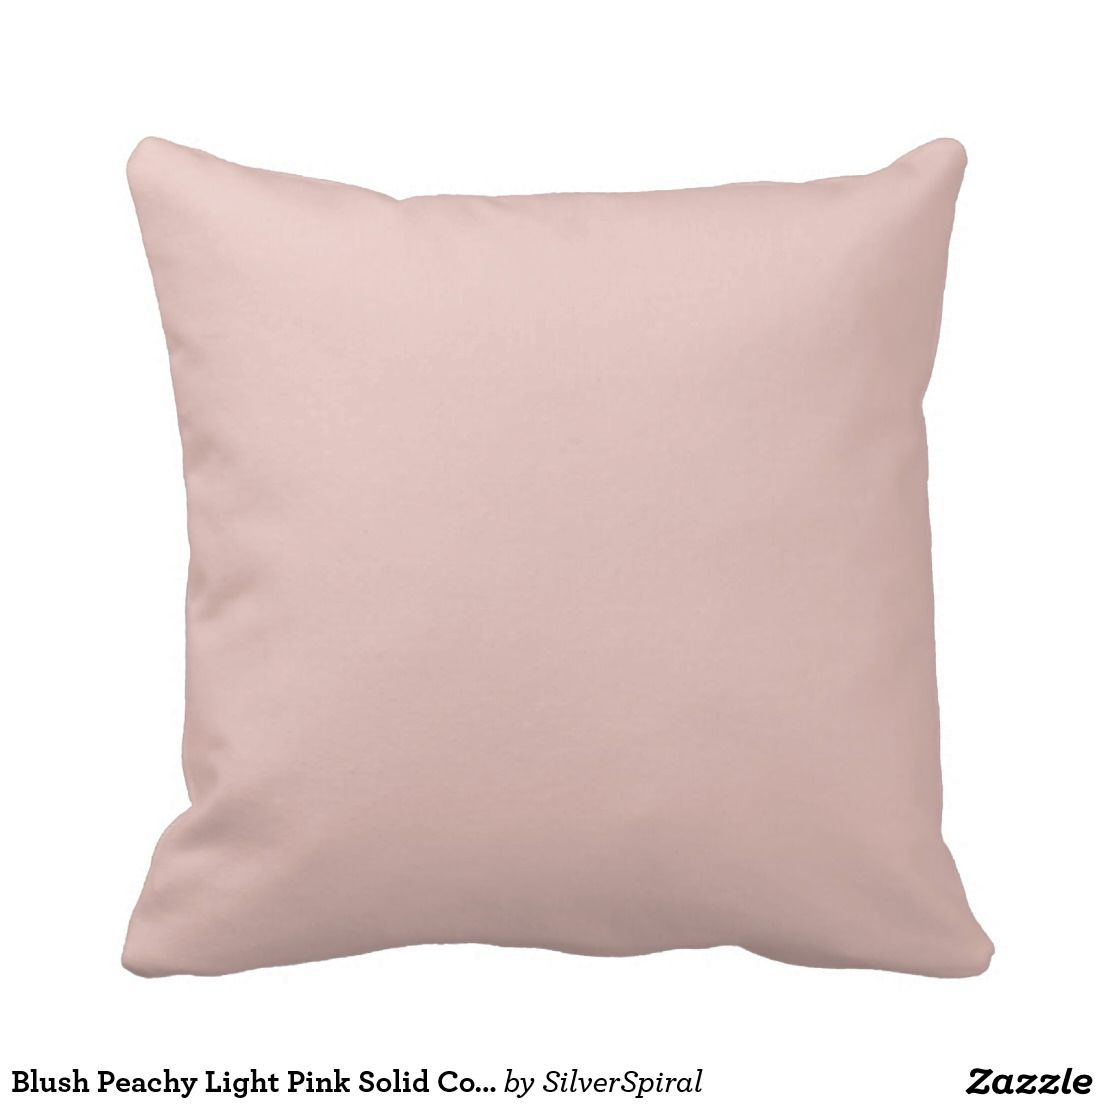 decorative foil glitter throw pillow pillows gray colored metallic pink blush marble rose on gold